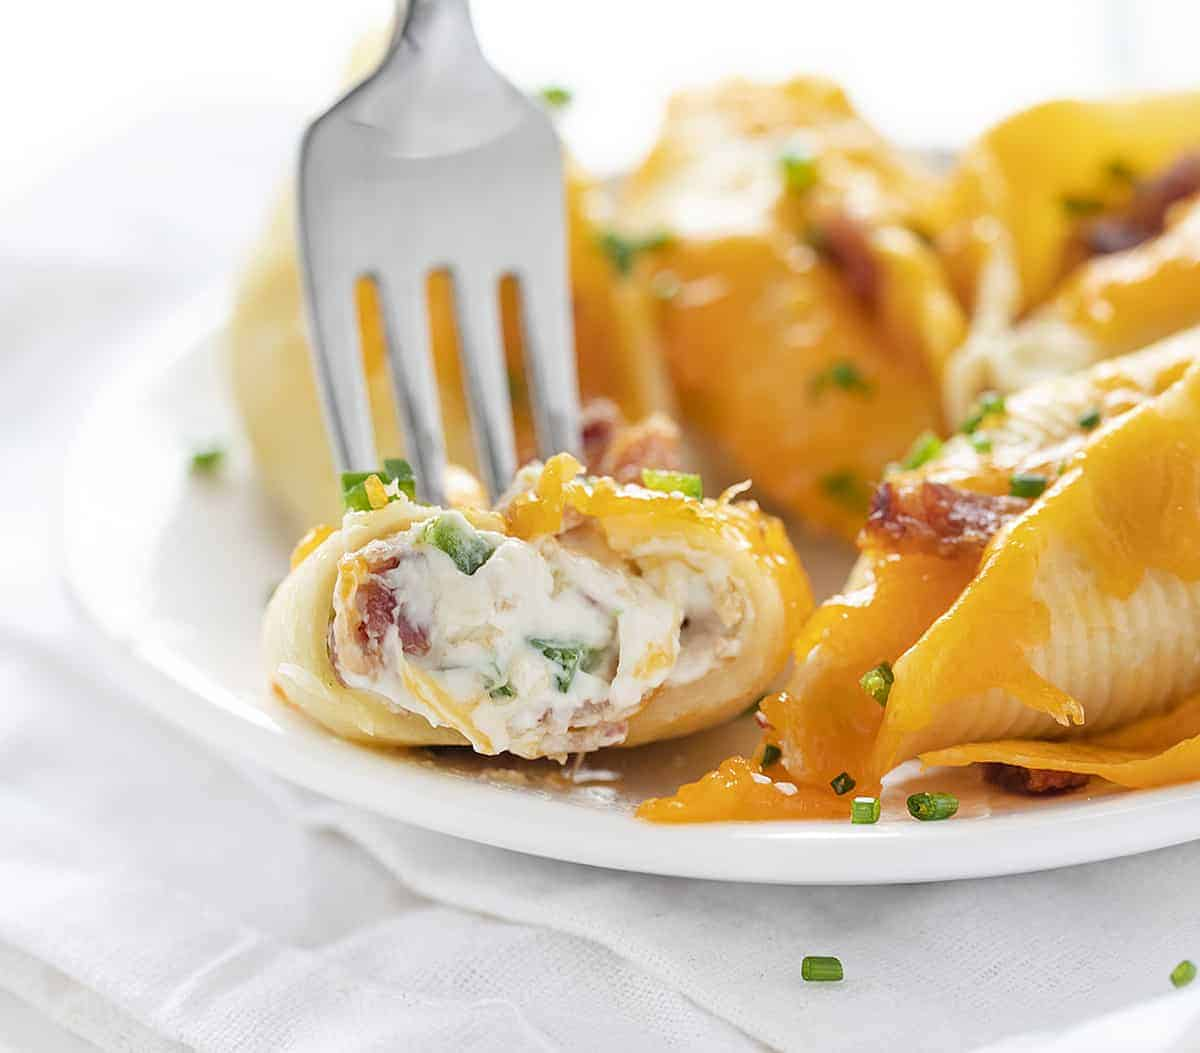 Fork Picking Up Cut Into Jalapeno Popper Stuffed Shells